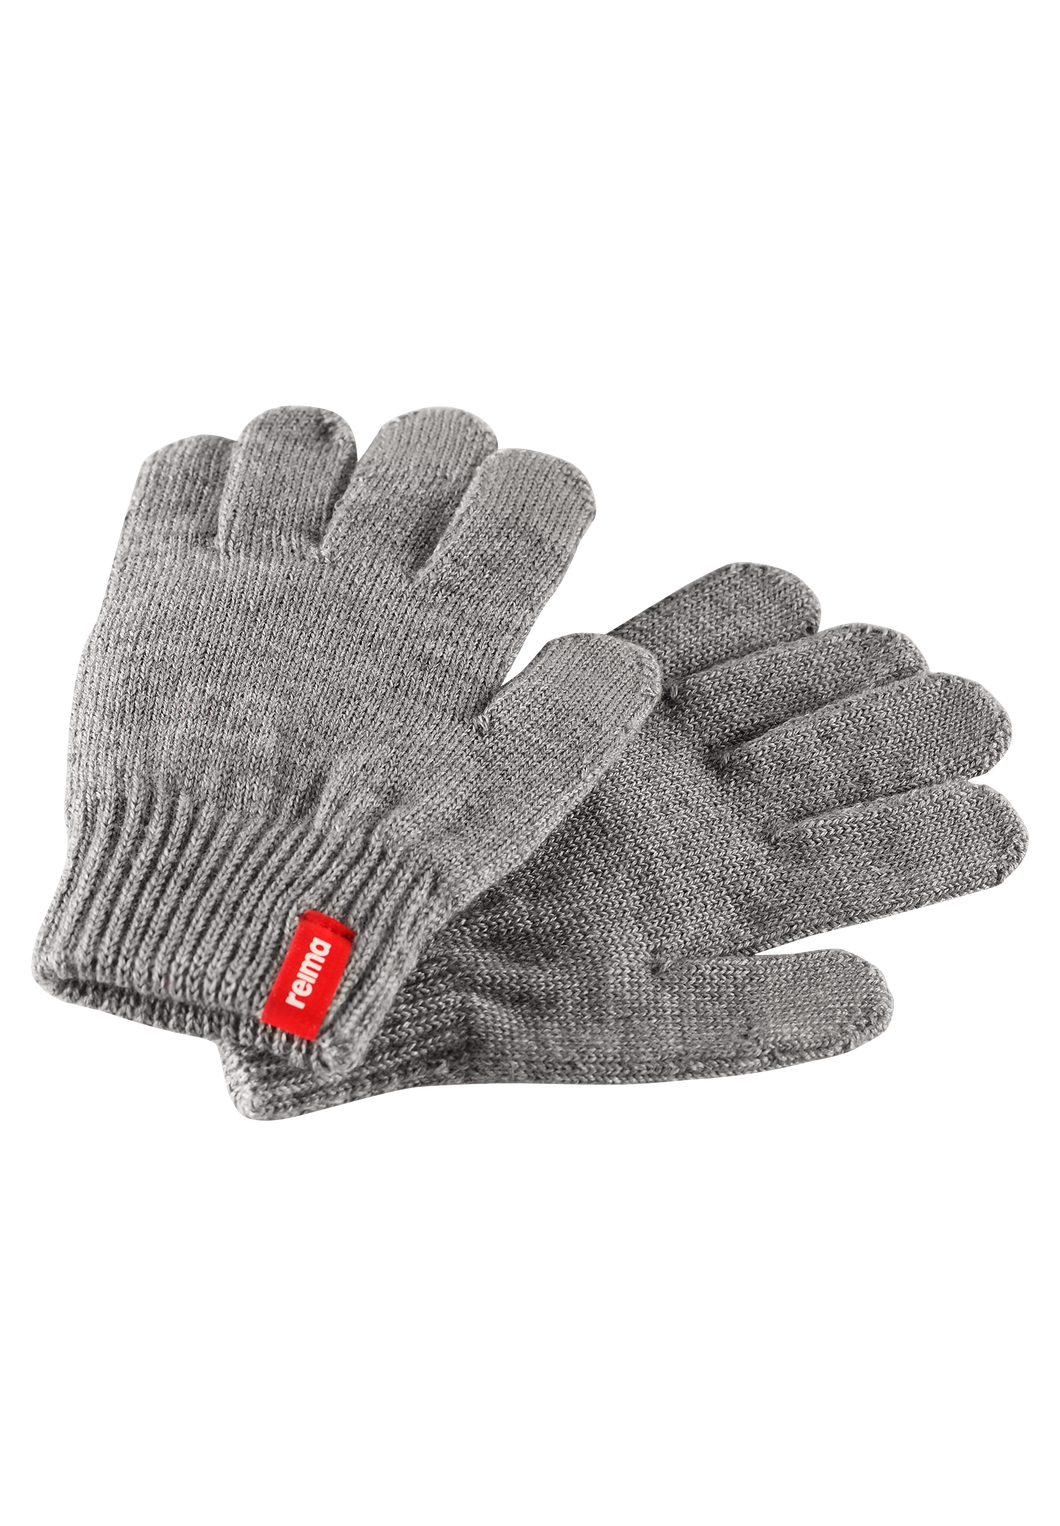 Reima Kinder Touch screen Handschuhe Rimo